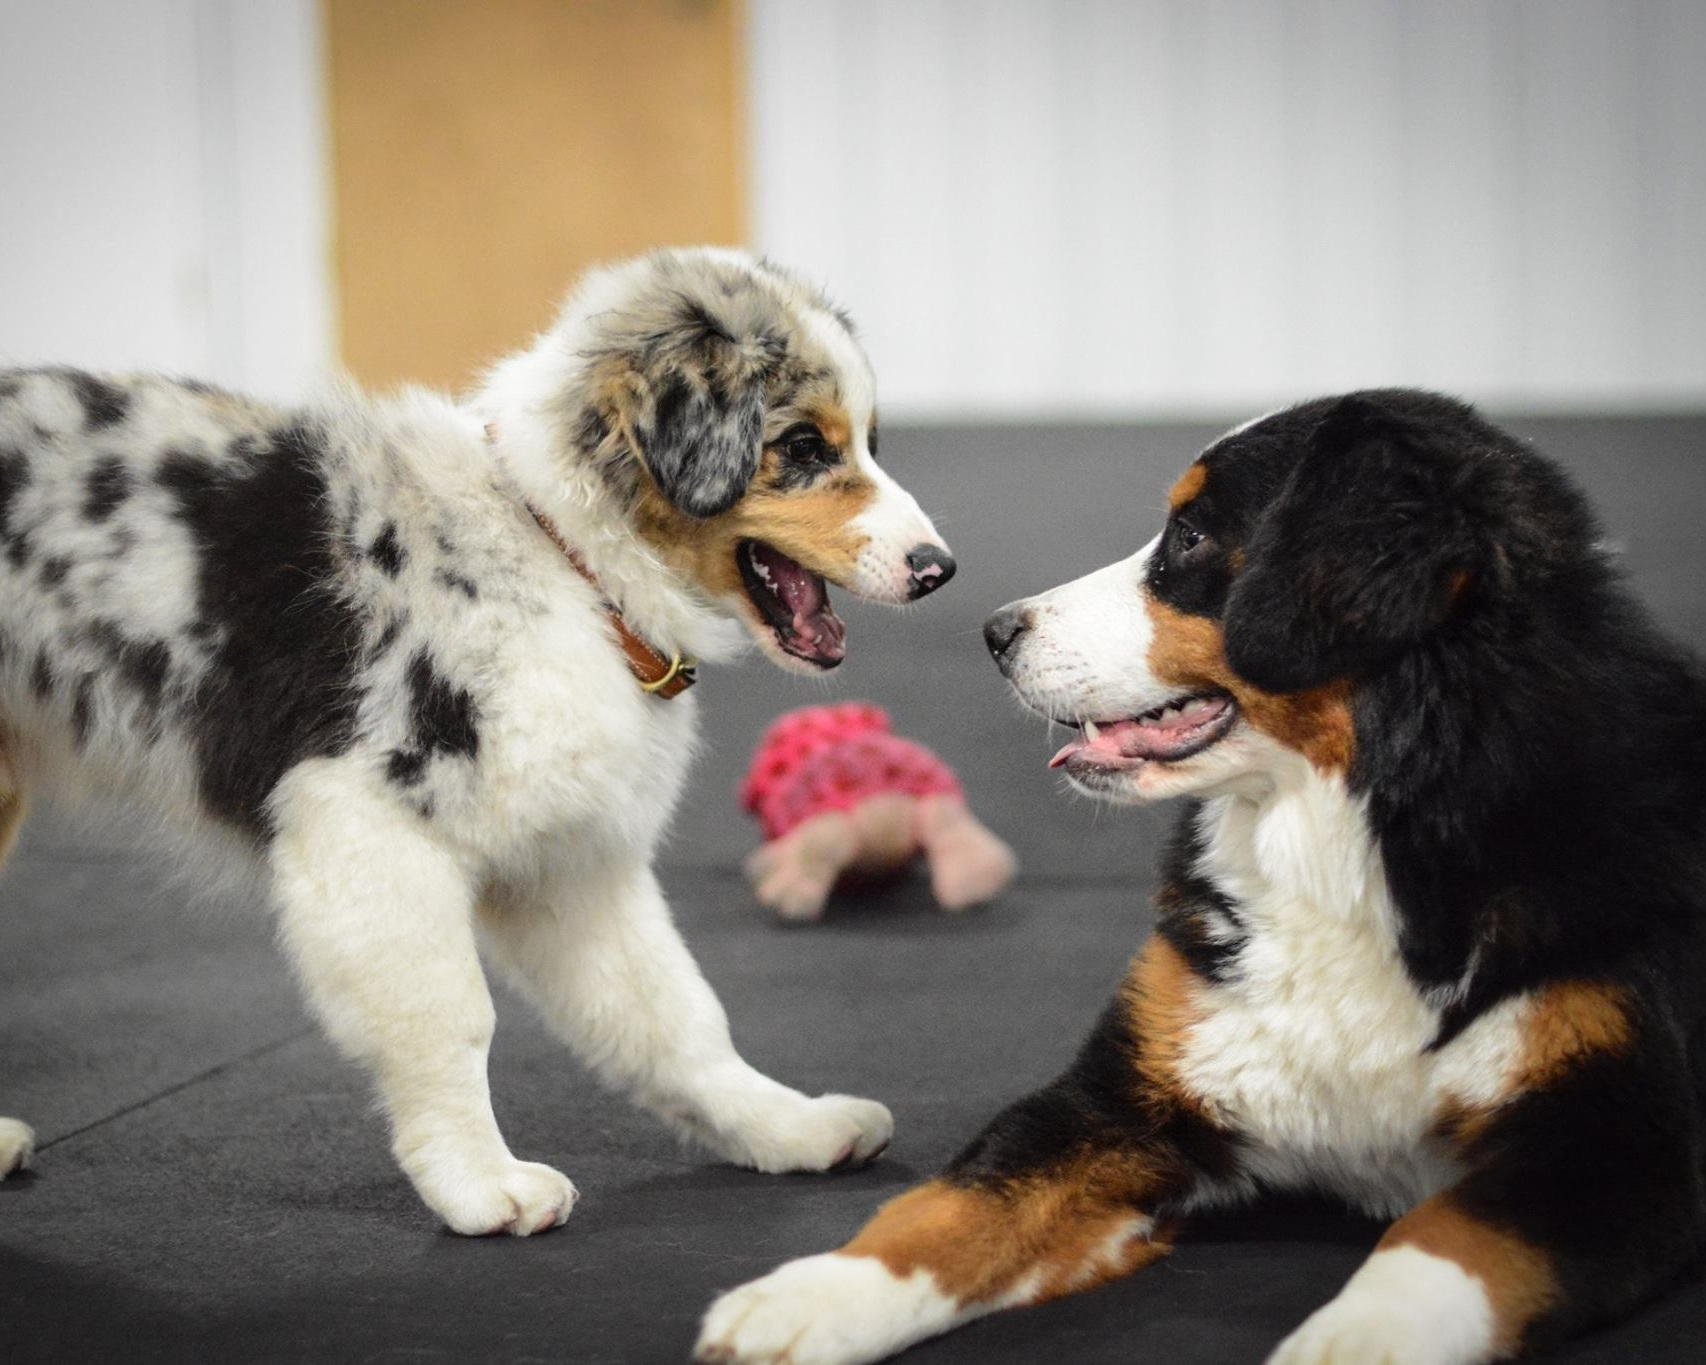 Puppy Right Start - Includes simple beginning obedience, solutions to common puppy issues, and off leash play*Puppies 8-16 weeks old (prime time for socialization)Saturdays @ 10:05 AM - 6 week class for $150 or $25 per class, with open enrollment so you can start as soon as you are ready!